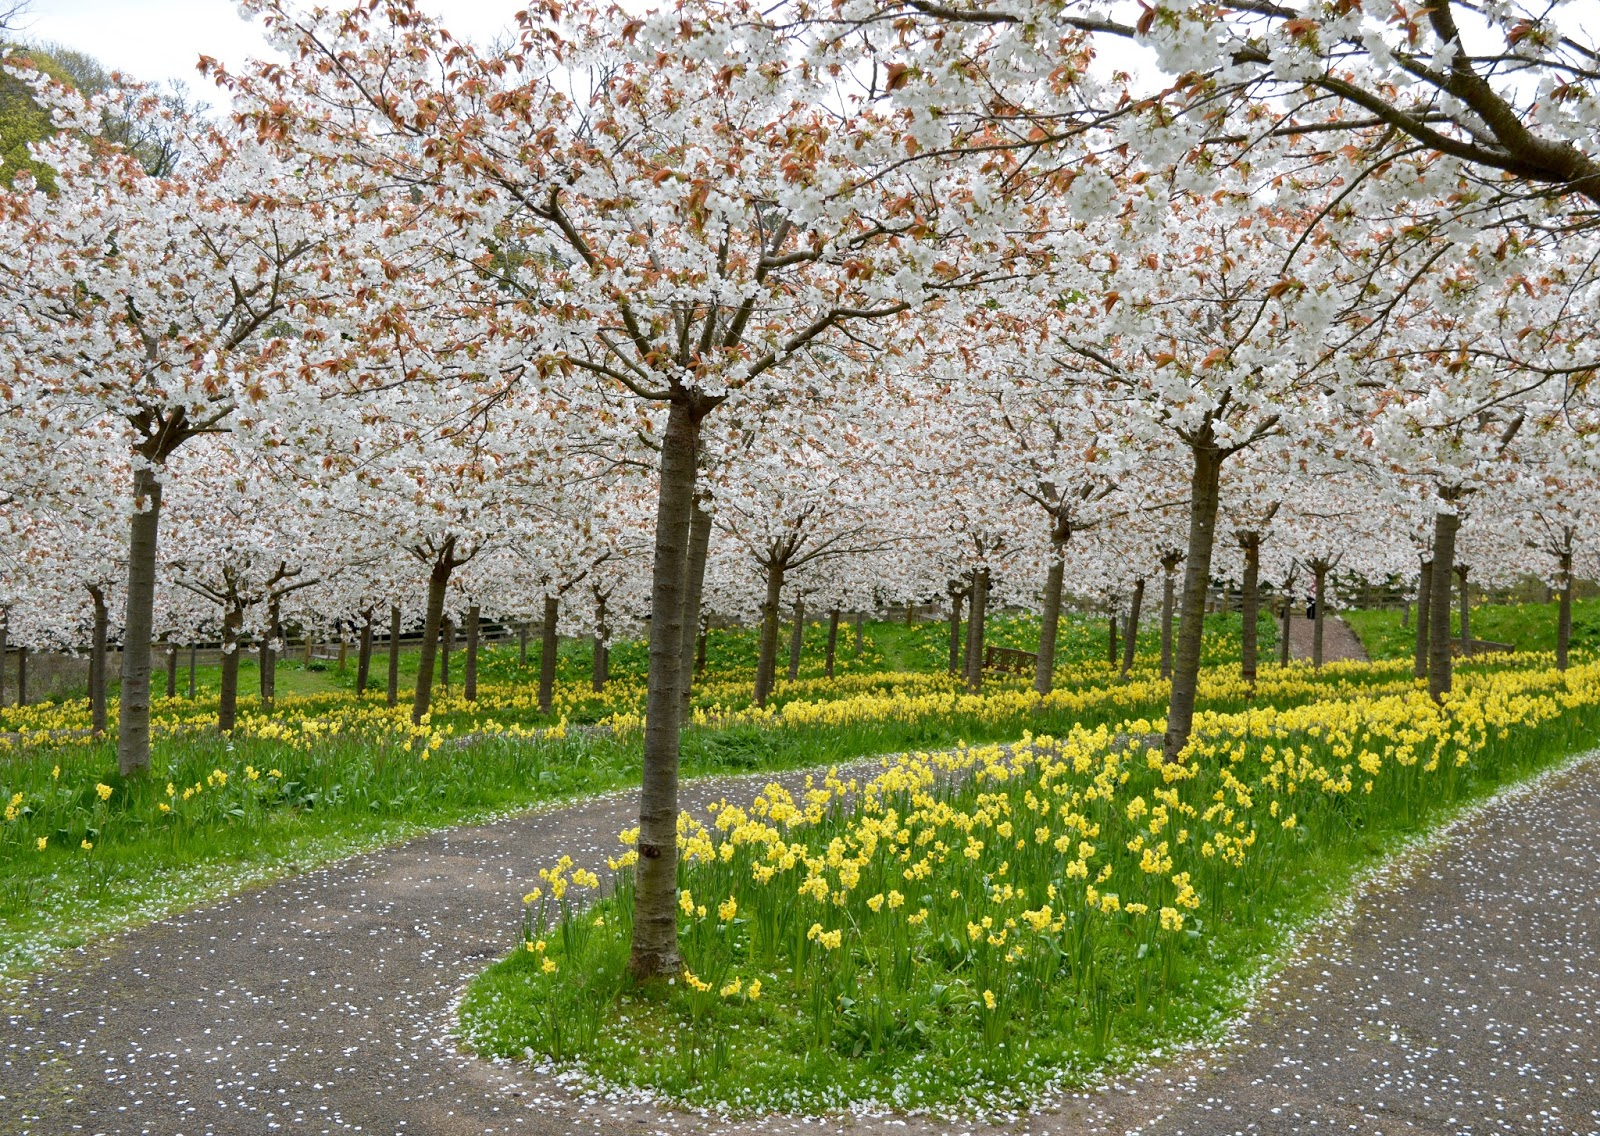 The Cherry Blossom Orchard at The Alnwick Garden  - petals on the ground